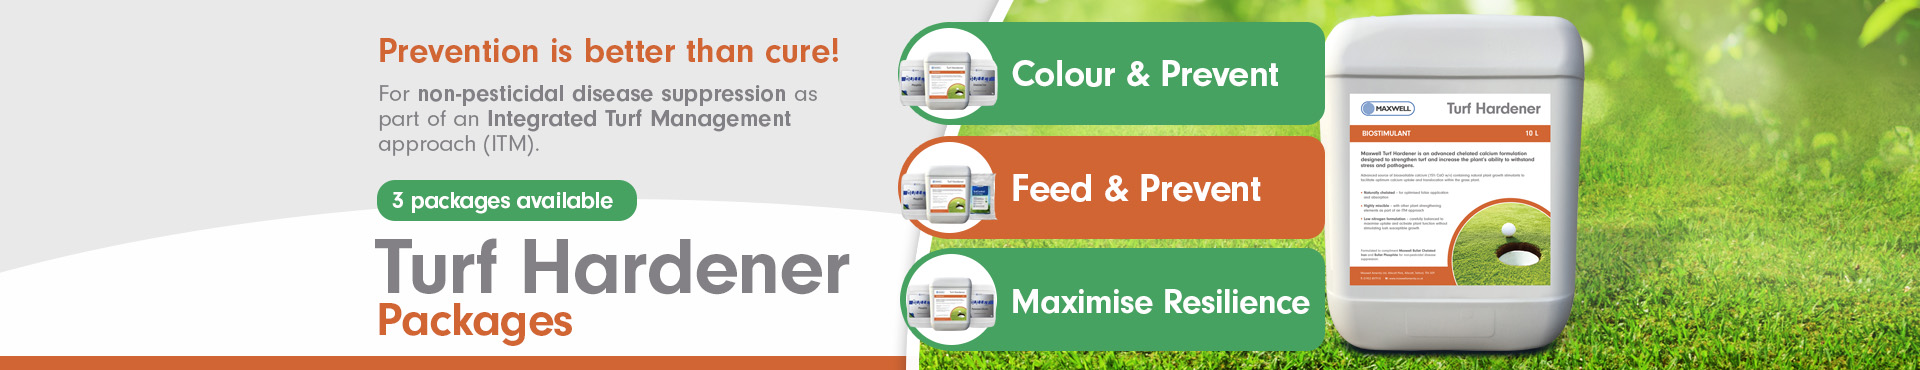 Turf Hardener Packages PC Shop Banner